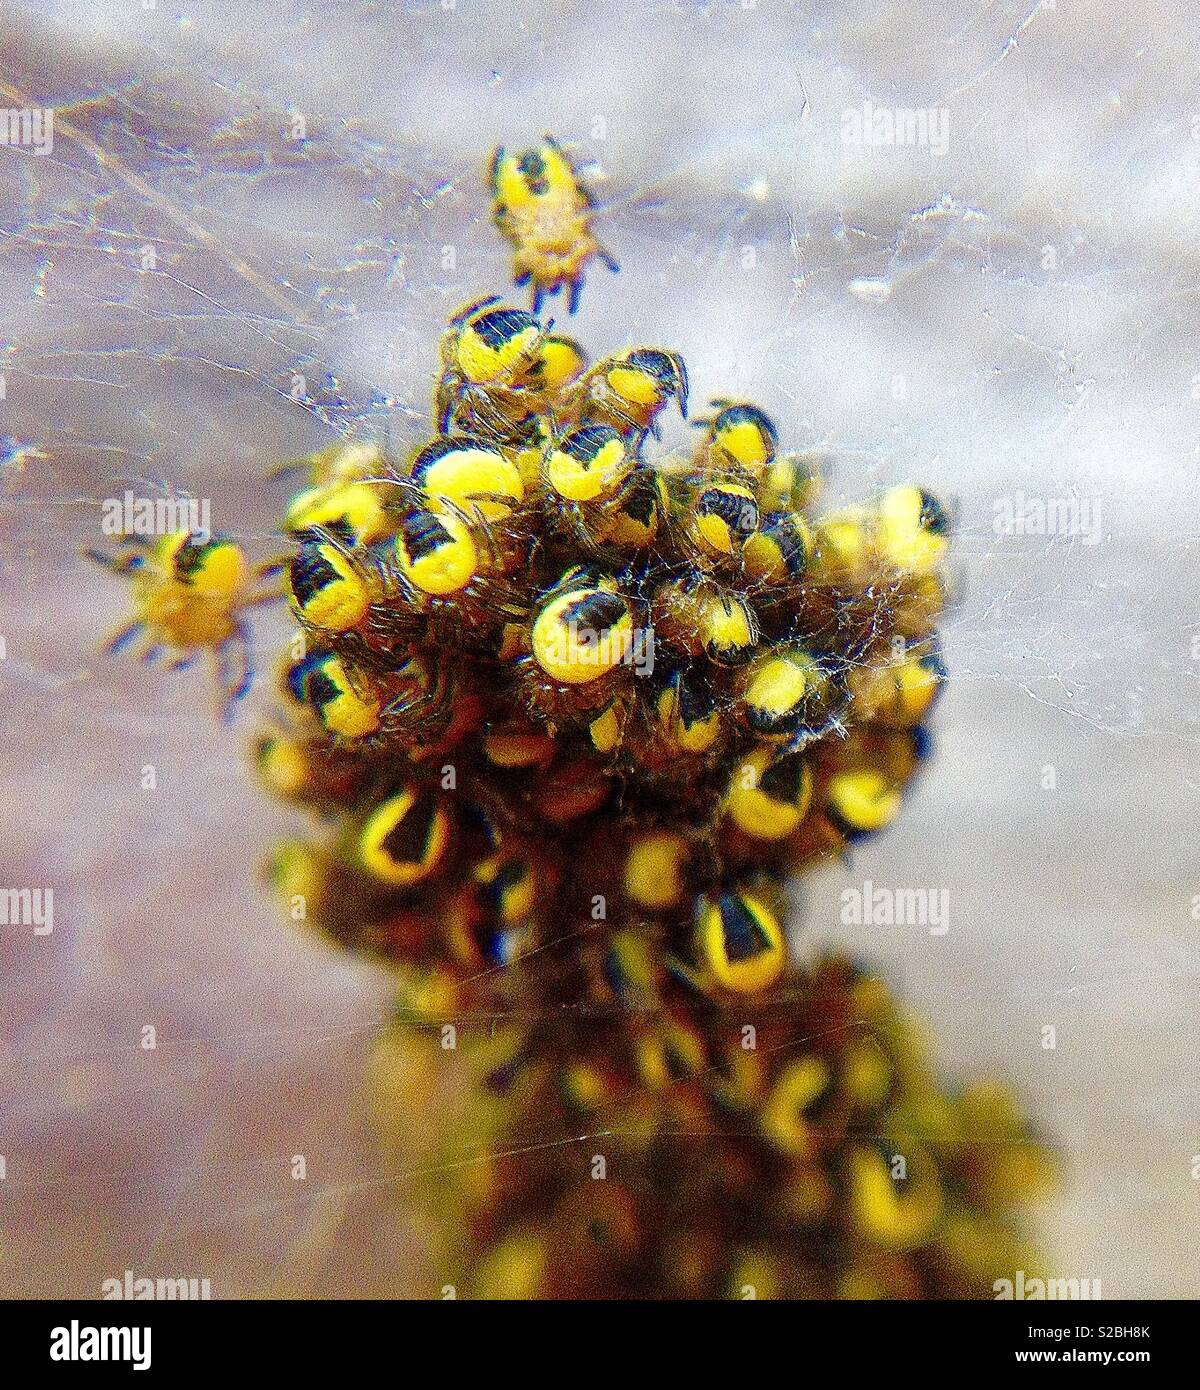 Garden spiderlings clustering together on a web for protection - Stock Image